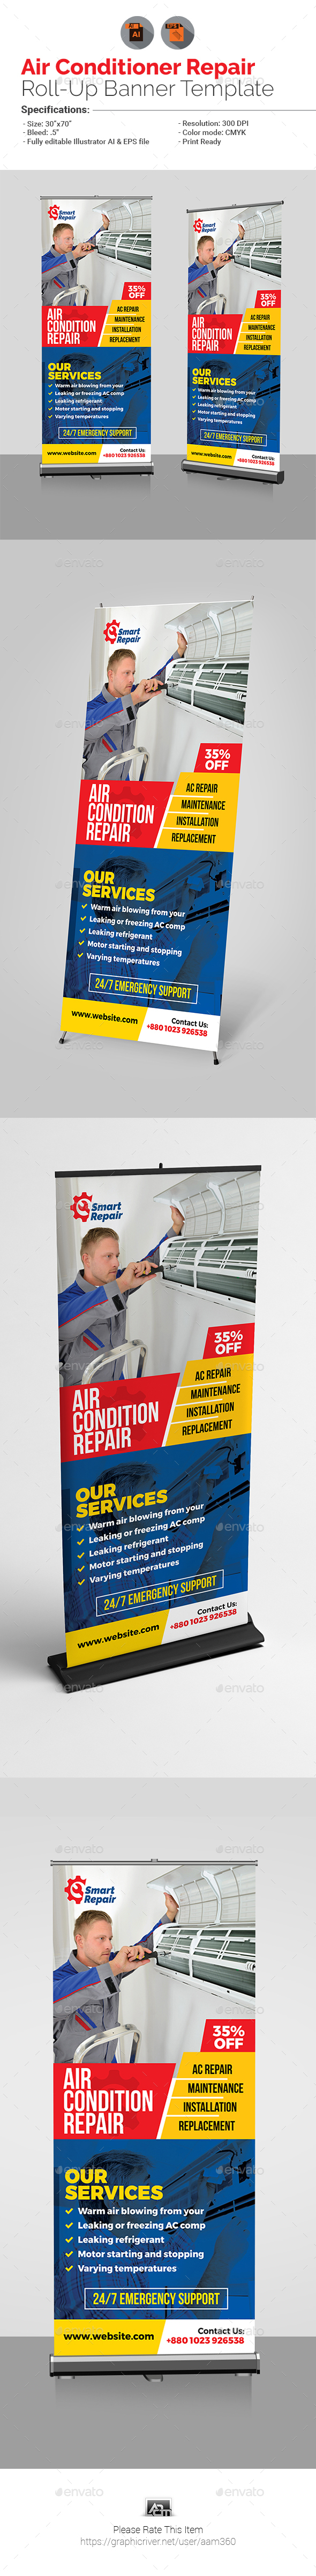 Air Conditioner Repair Service Roll-Up Banner - Signage Print Templates